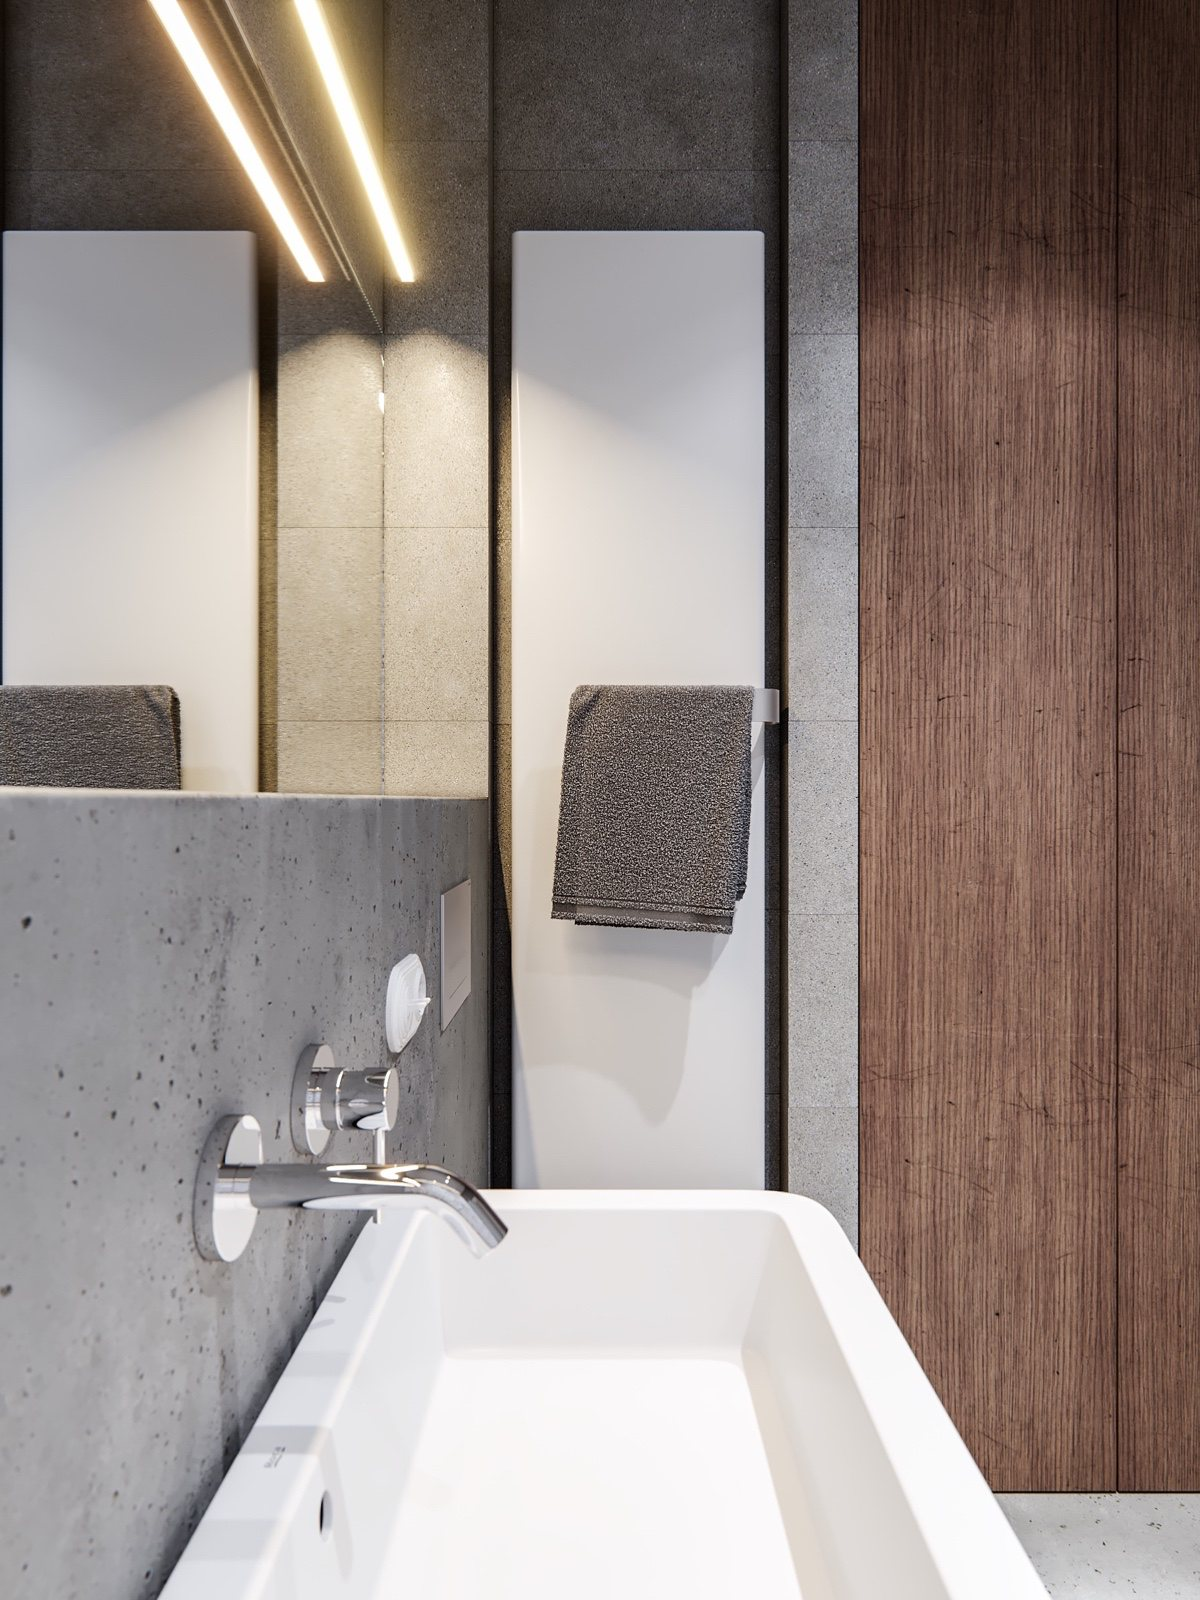 Modern Industrial Bathroom Design - A pair of stylish apartments that put their extra rooms to good use